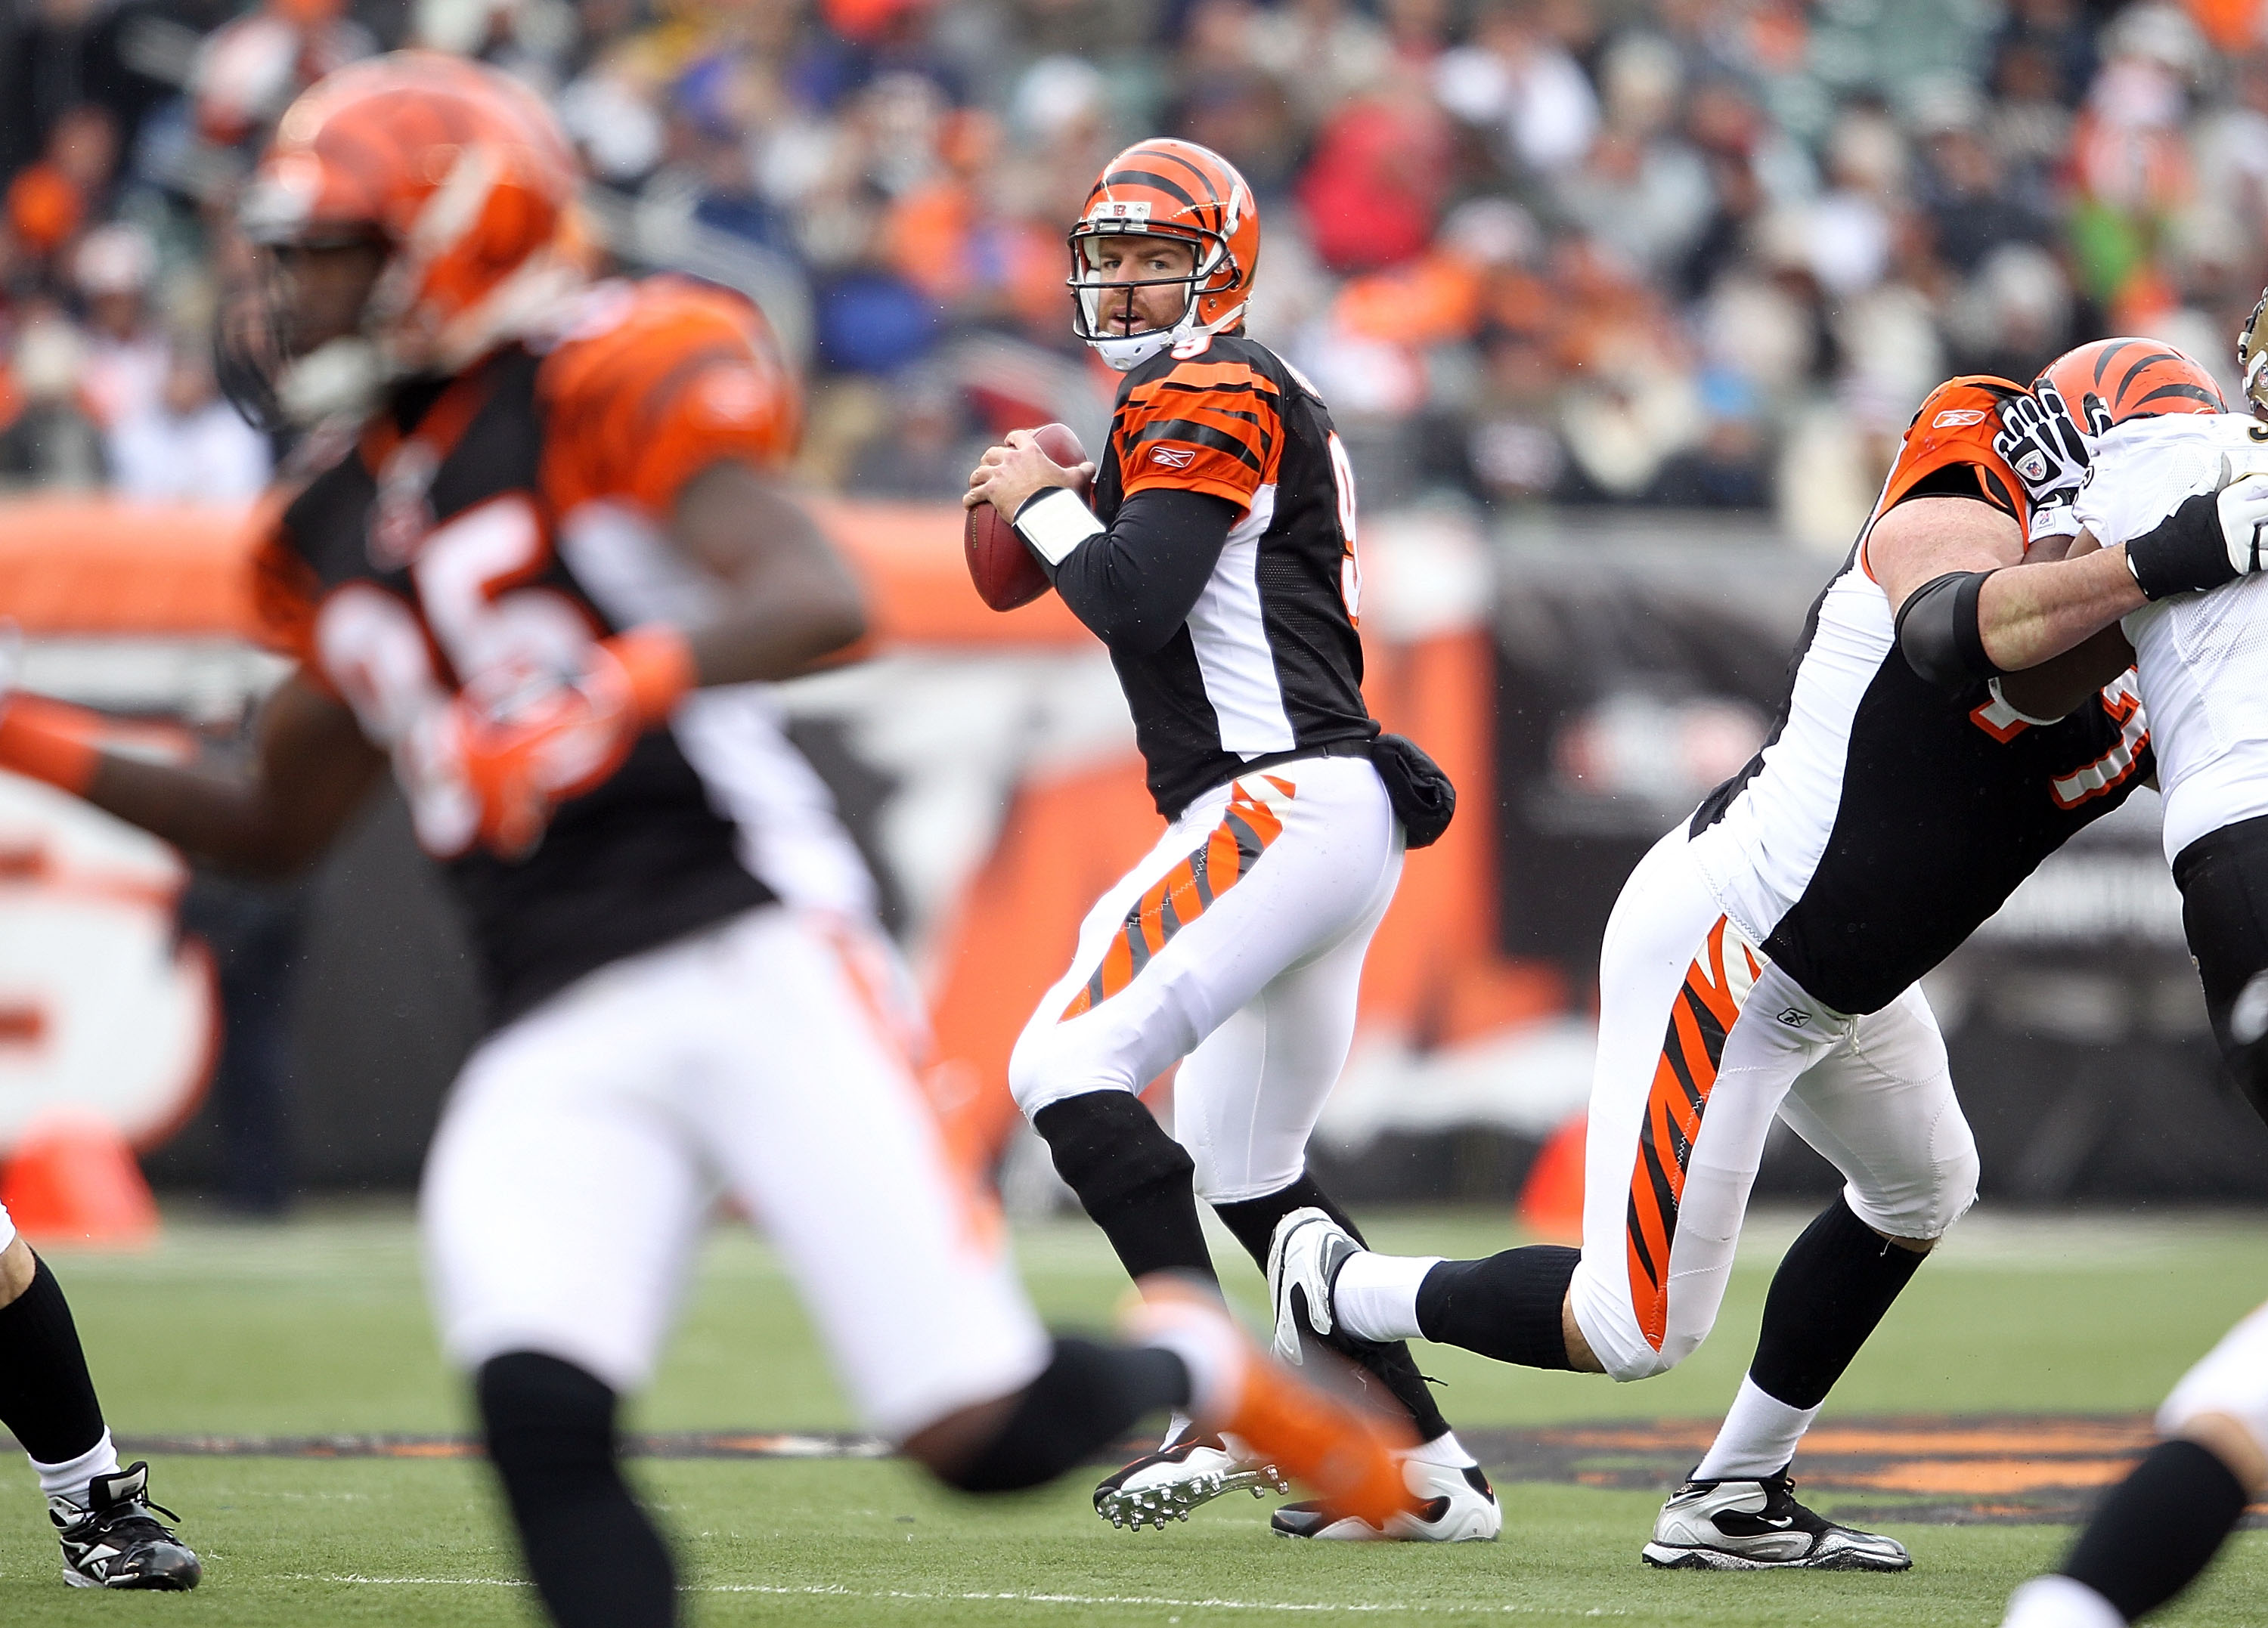 CINCINNATI, OH - DECEMBER 05:  Carson Palmer #9 of the Cincinnati Bengals throws a pass during the NFL game against the New Orleans Saints at Paul Brown Stadium on December 5, 2010 in Cincinnati, Ohio.  The Saints won 34-30.  (Photo by Andy Lyons/Getty Im